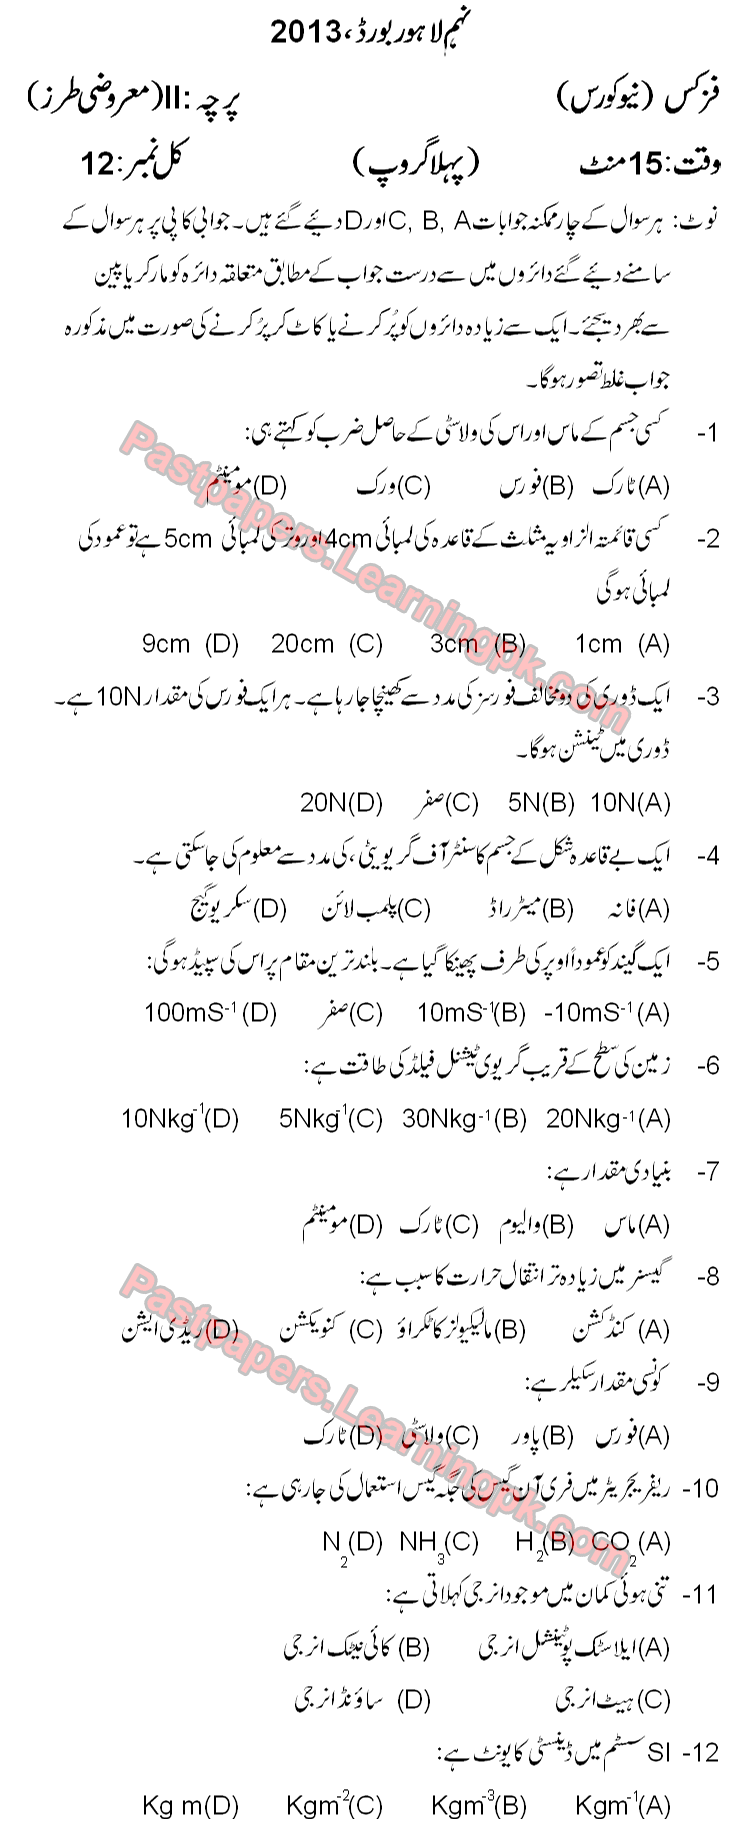 Lahore Board 2013 9th Class Physics Past Papers 5 Year Old Guess